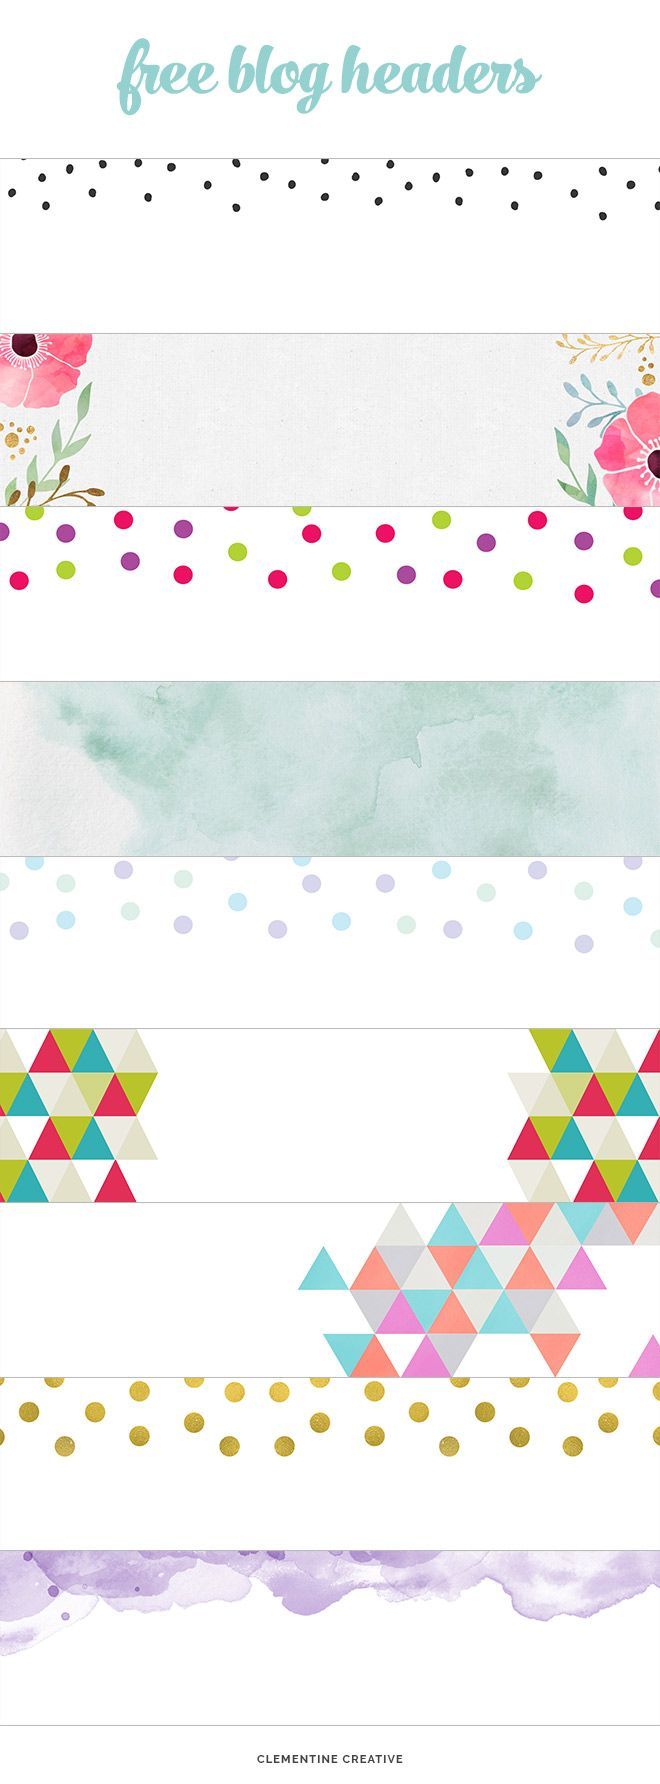 Free Creative Blog Headers to Download | Header, Gold dots and ...